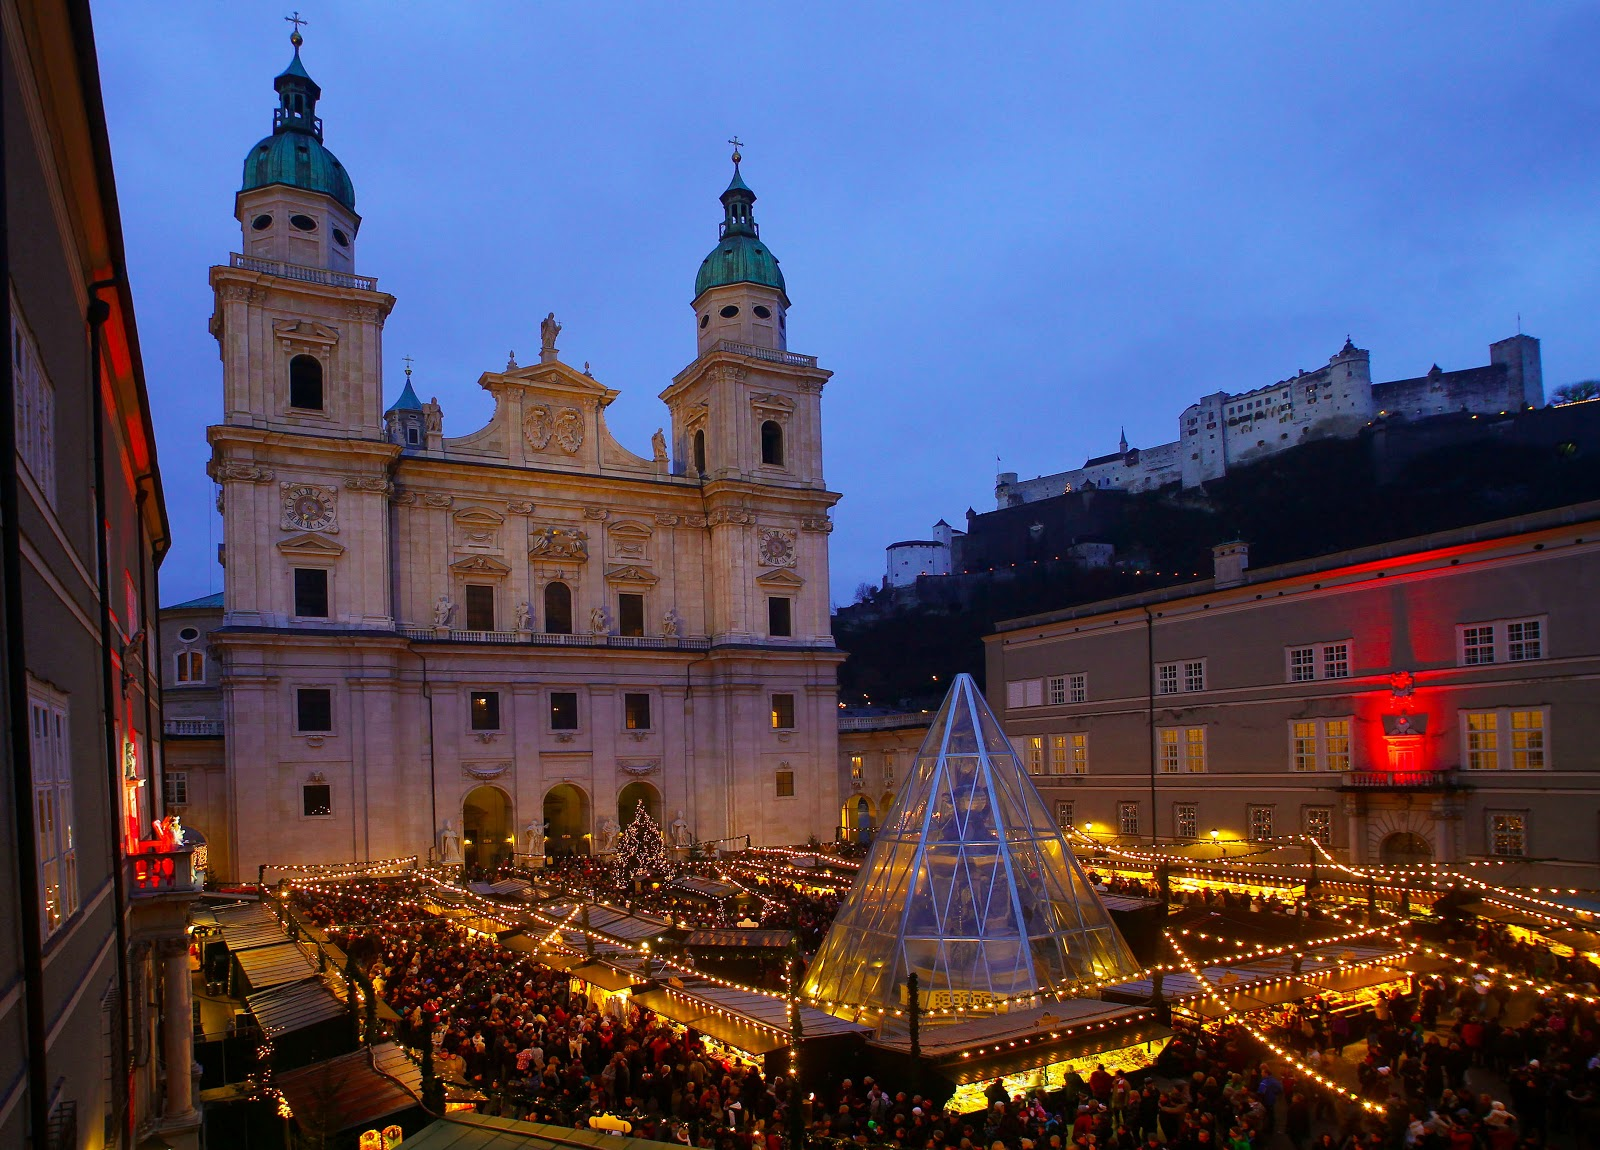 The Salzburg Christmas market at the Domplatz or Church Square twinkles beneath the imposing Hohensalzburg Castle. Photo: Courtesy of Christkindlmarkt.co.at. Unauthorized use is prohibited.